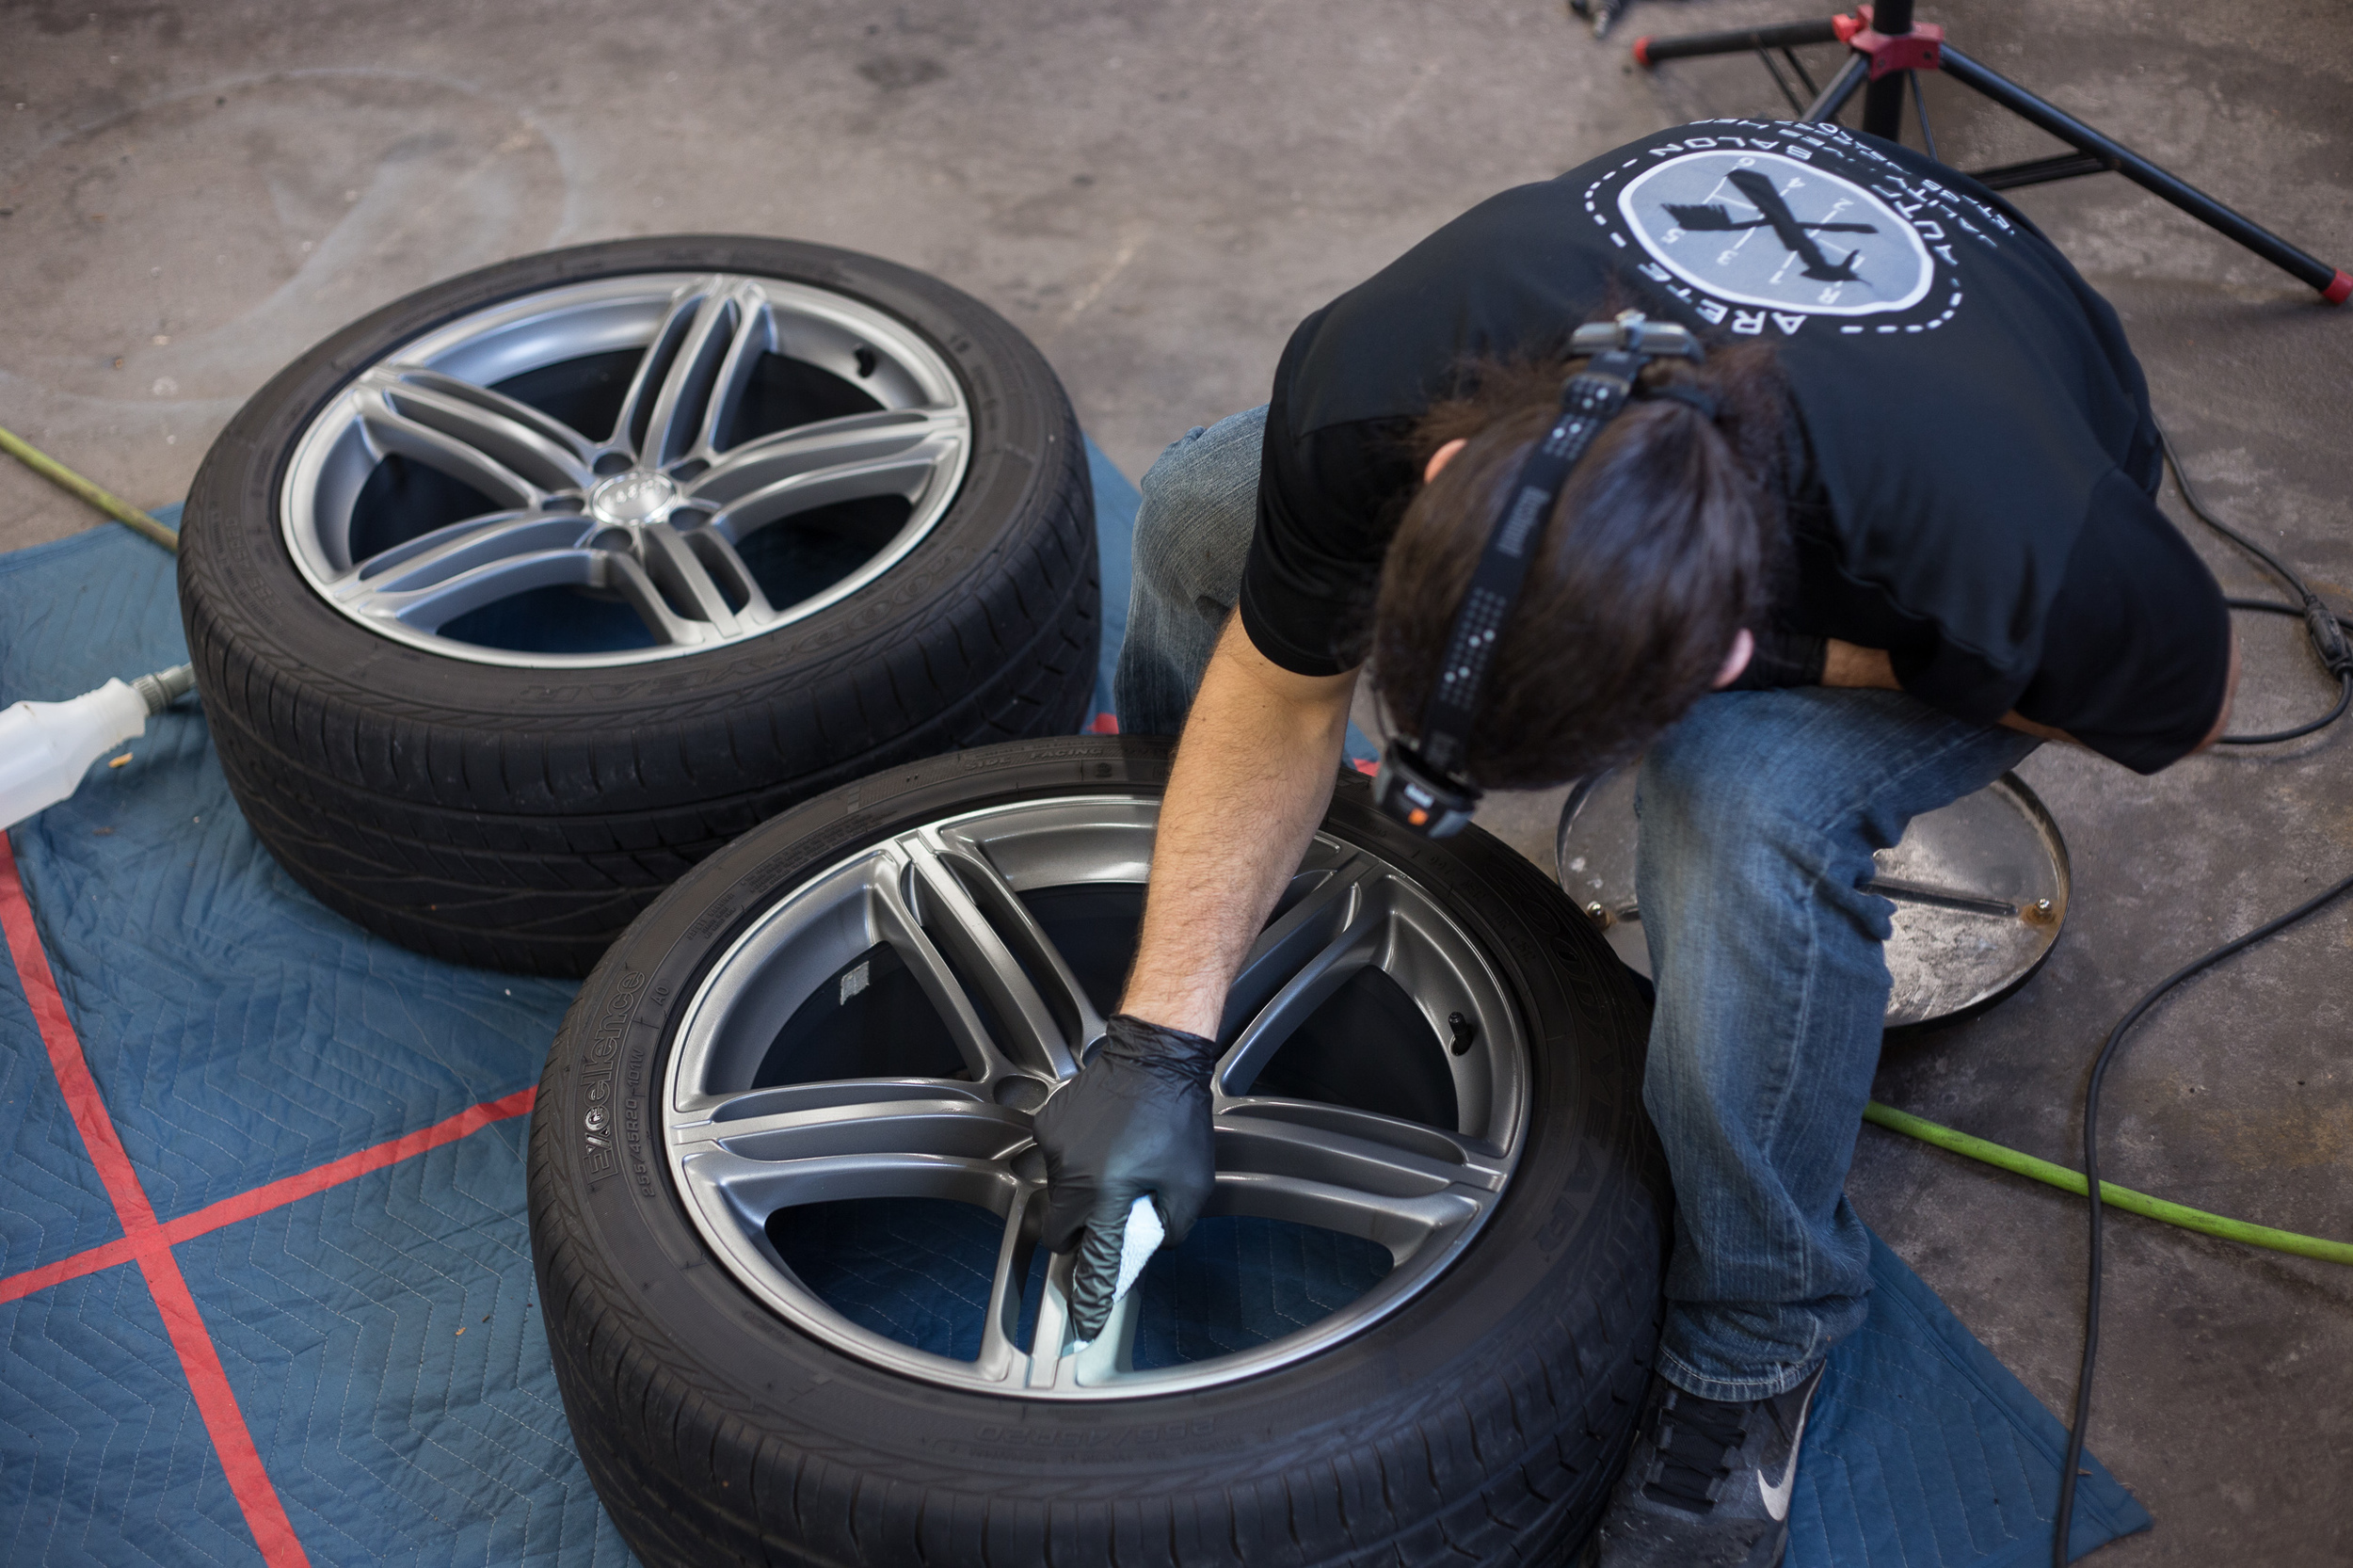 Following decontamination, CQuartz Finest was applied to the faces and barrels of the wheels.